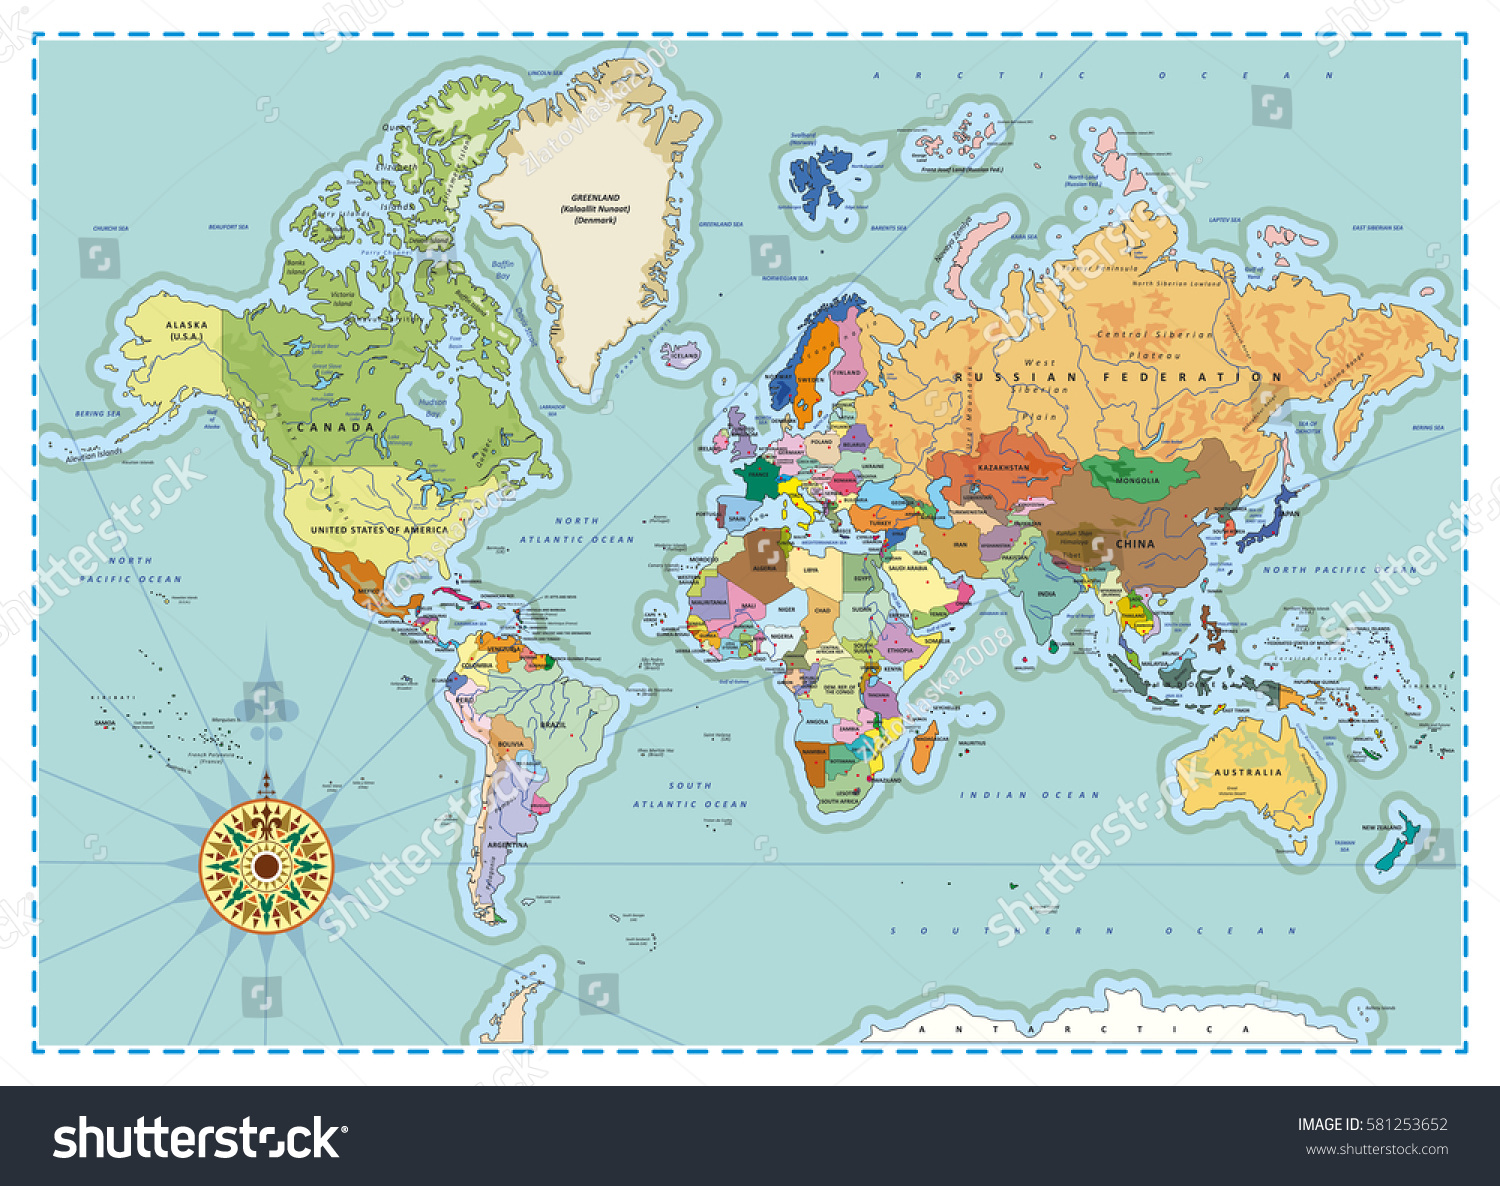 Detailed World Map Besttabletforme Greyhawk Map Starbucks Map - Detailed world map